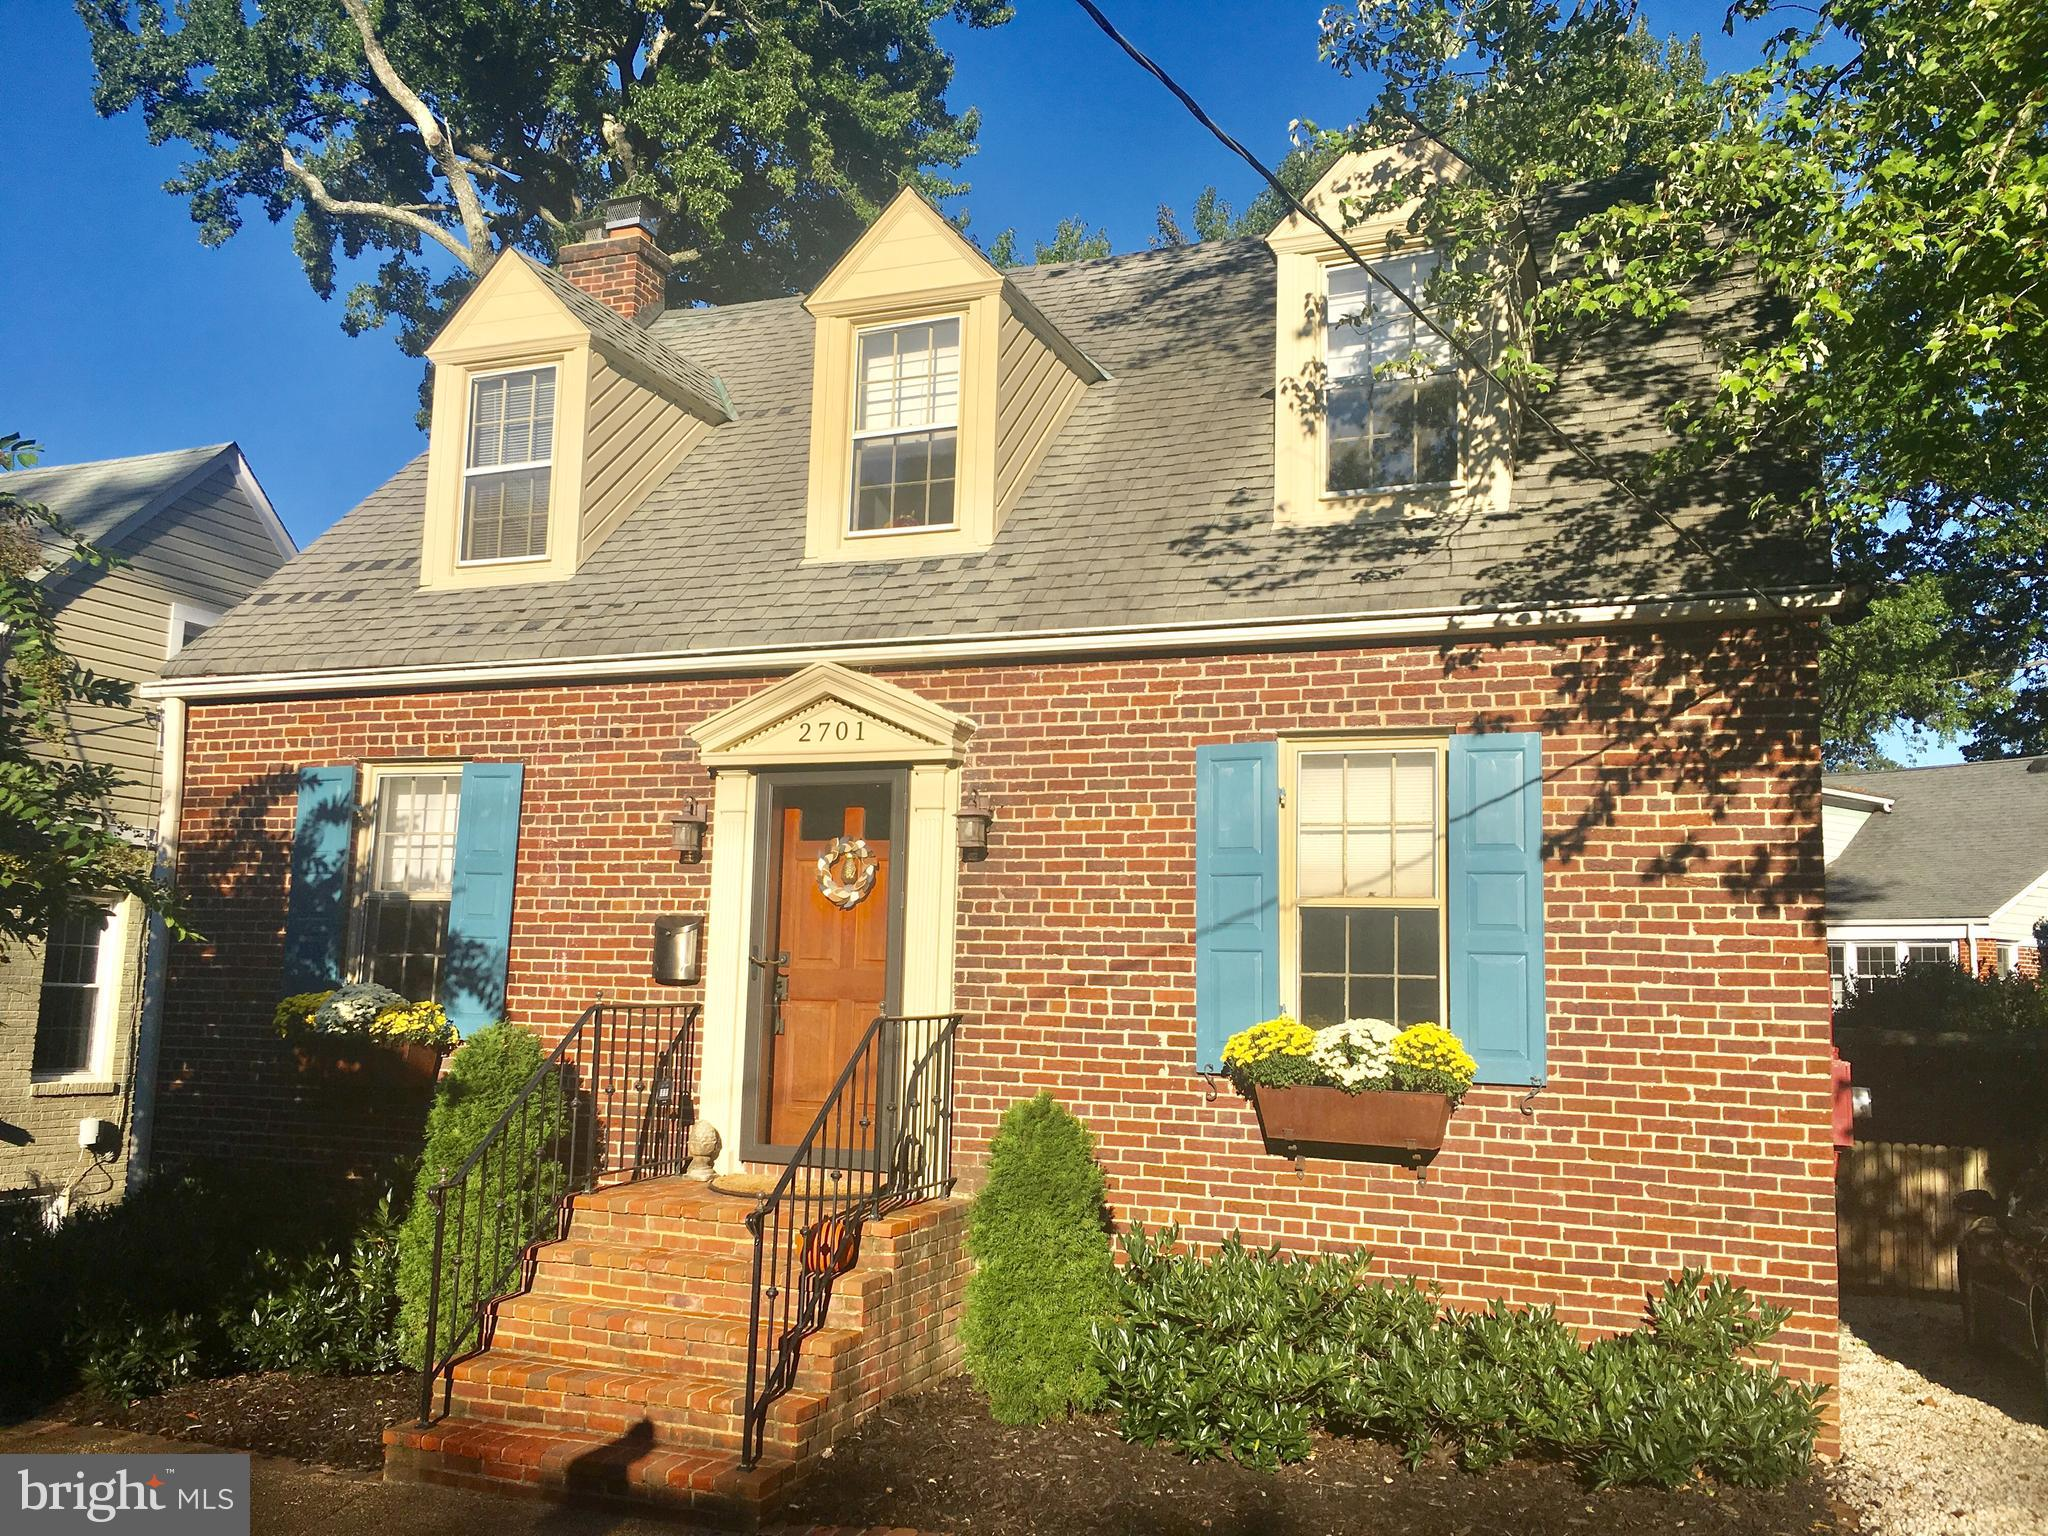 Spacious, classic brick Cape Cod a short walk to the restaurants & shops of Del Ray. Kitchen w/ eat-in space walks out to deck & comfortable back yard. Hardwoods on 2 levels. Separate DR & LR. 2 fireplaces. Large master features walk-in closet. Great closets & ample storage. Lower level has laundry room, storage/utility room & large family room. Main level has 2 bedrooms. 2 car off-street parking.